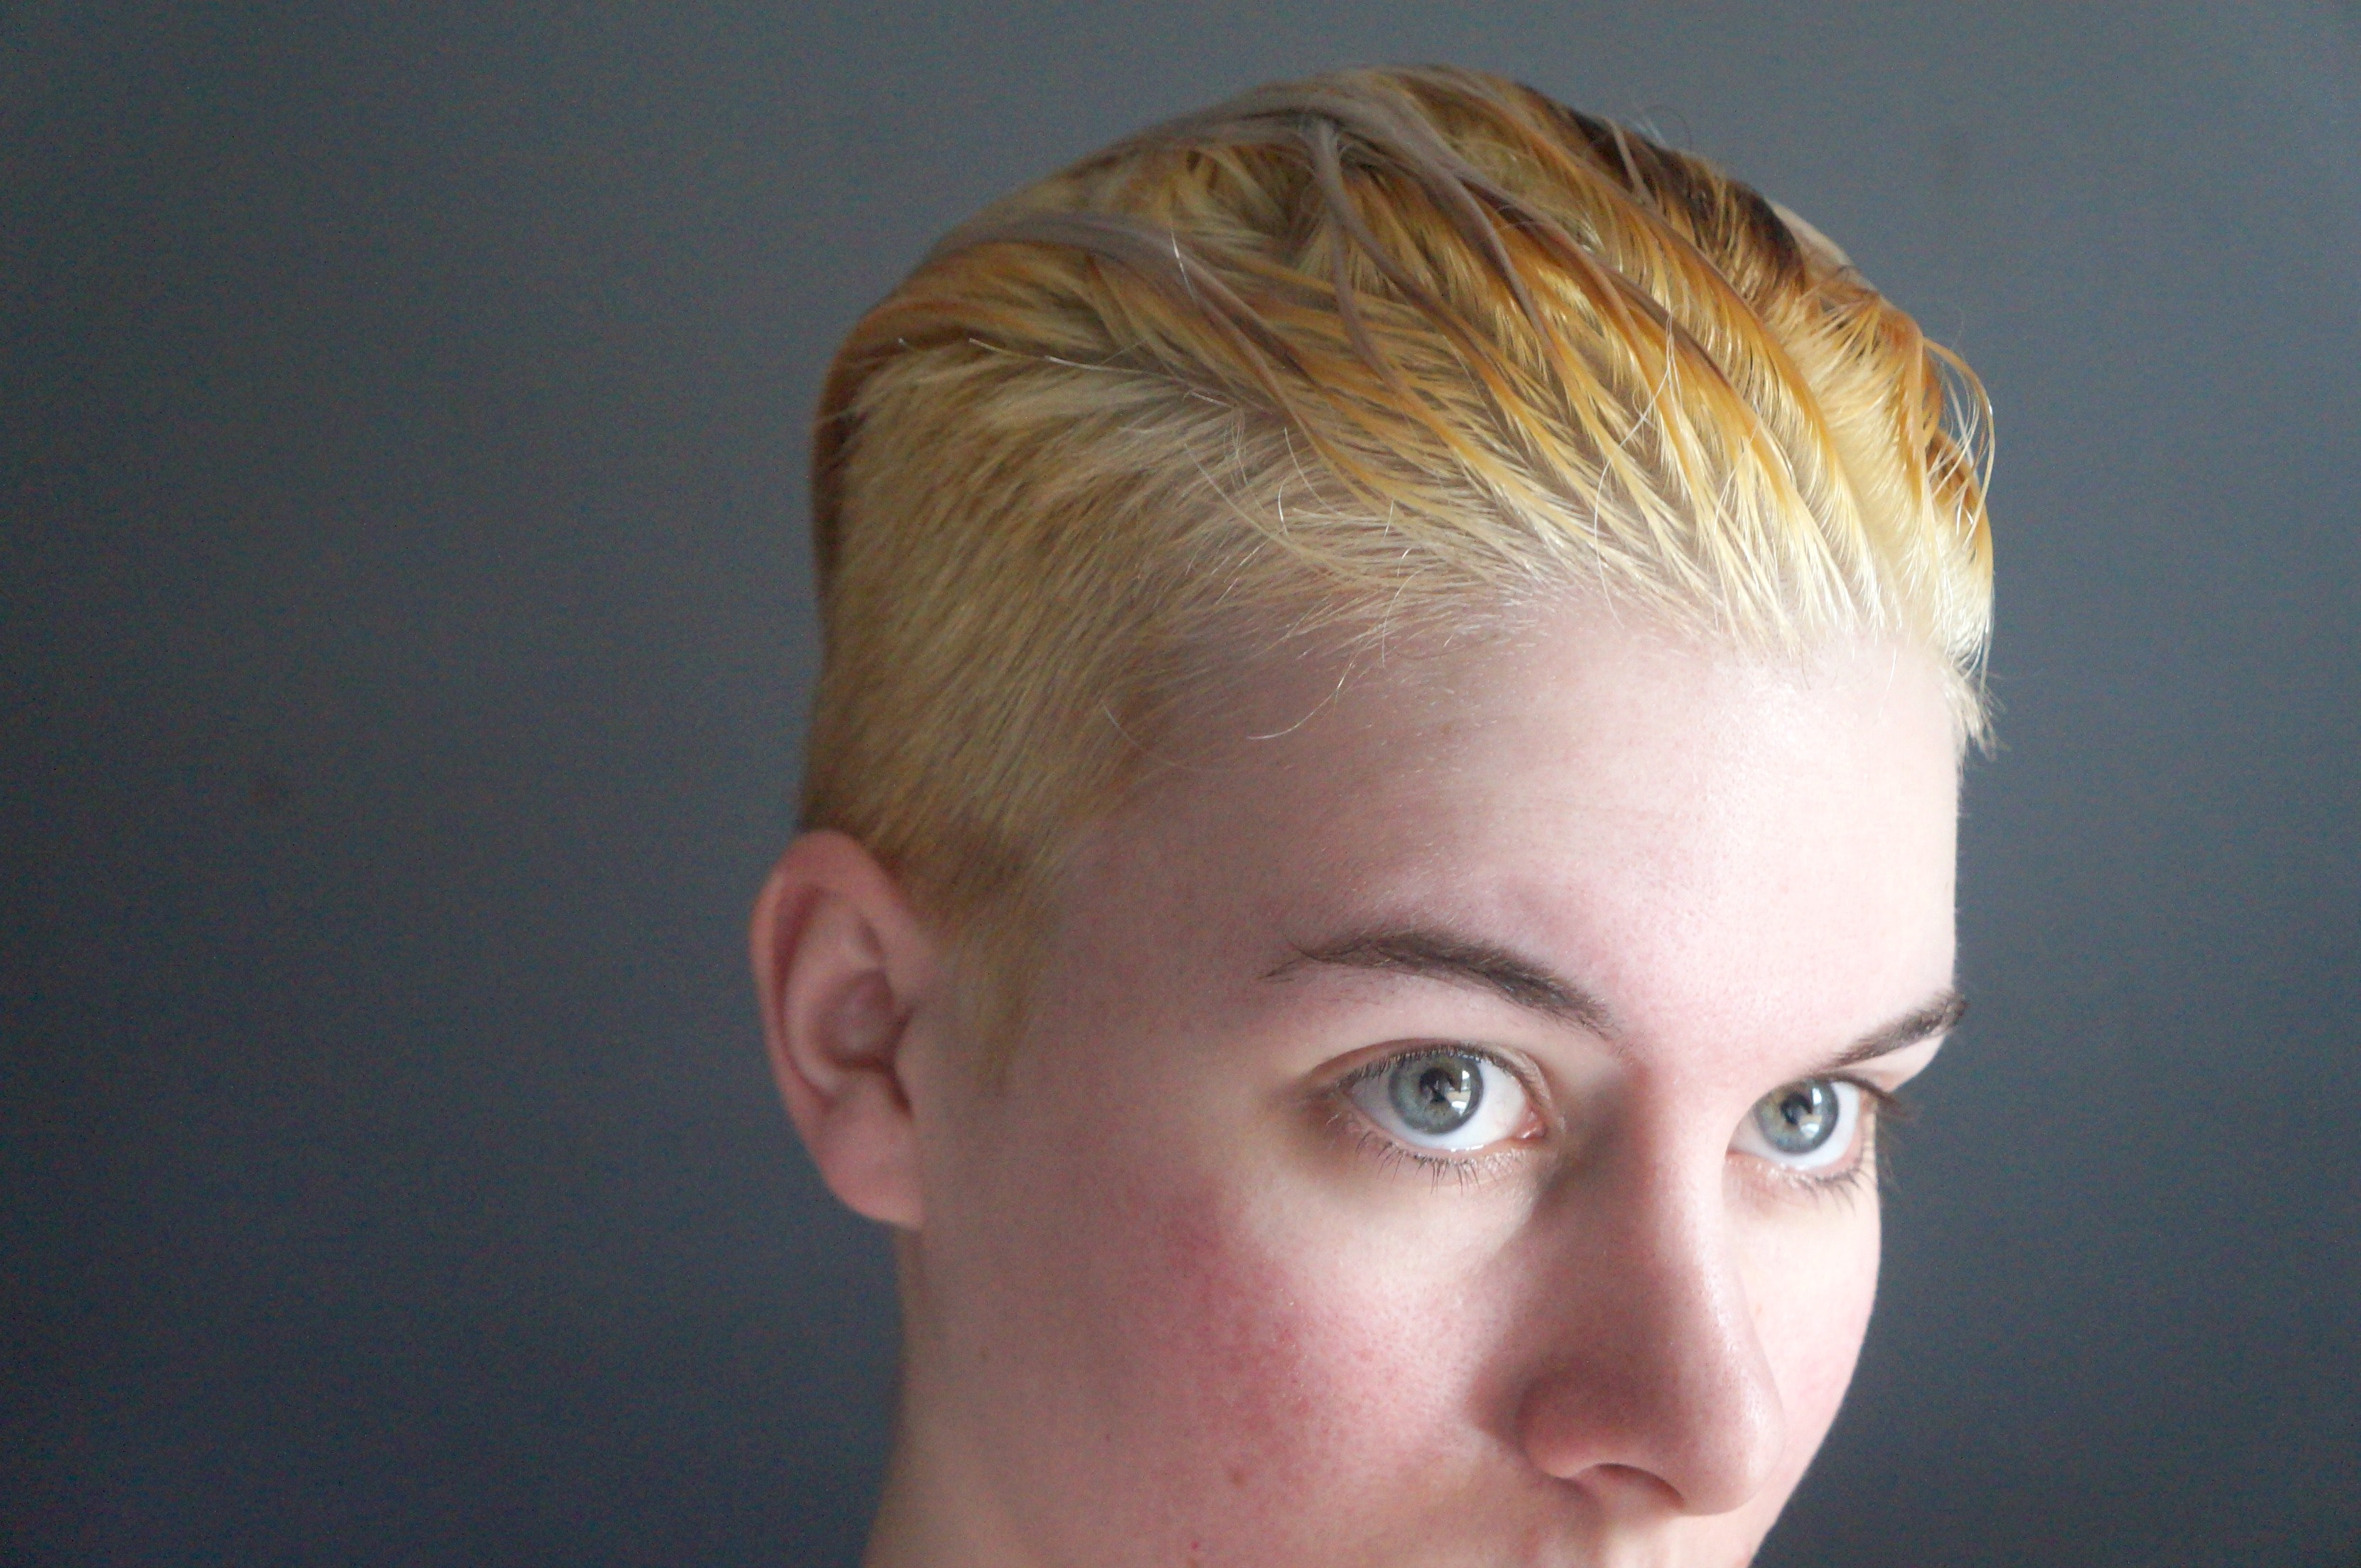 How To Safely Bleach Your Hair At Home For The White Blonde Look Of